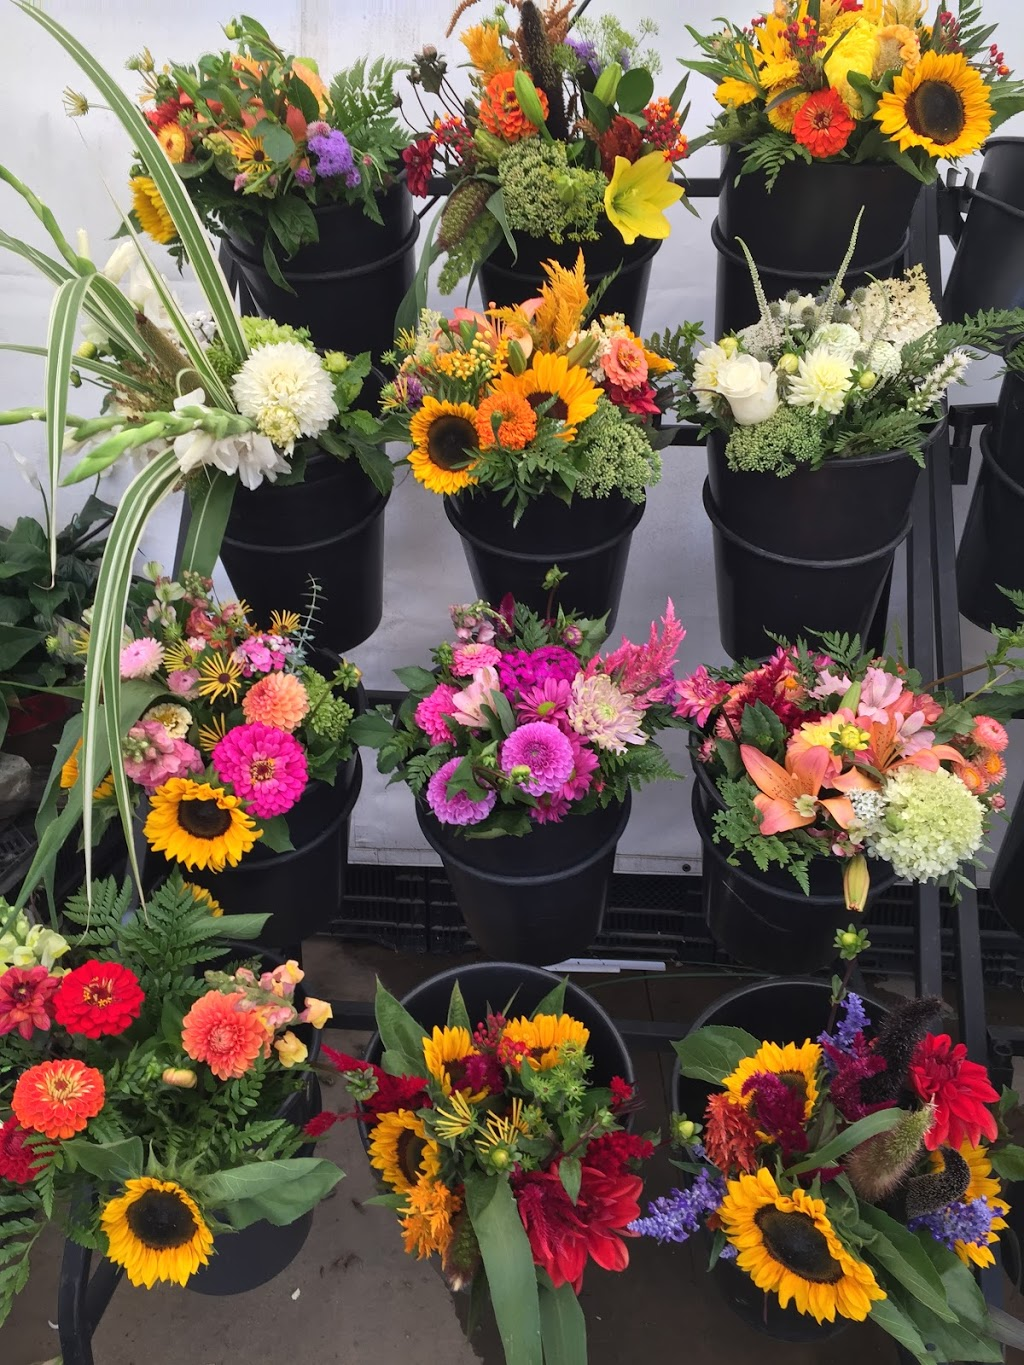 The Flower Lady and Gent   florist   7440 Pack Rd, London, ON N6P 1M1, Canada   5196149880 OR +1 519-614-9880